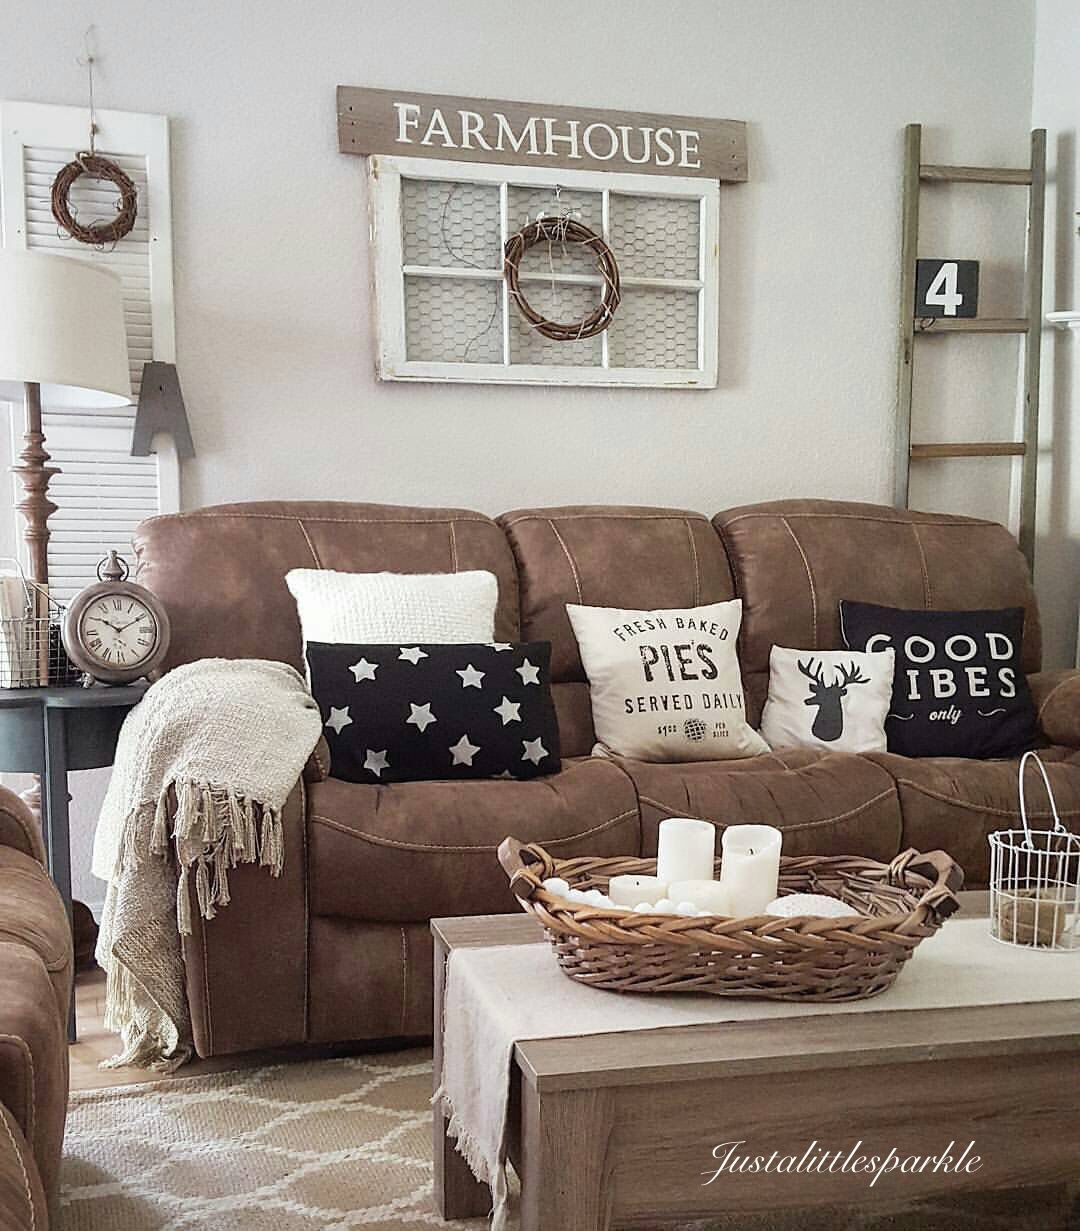 4 Farmhouse Living Room Maintenance Mistakes New Owners Make